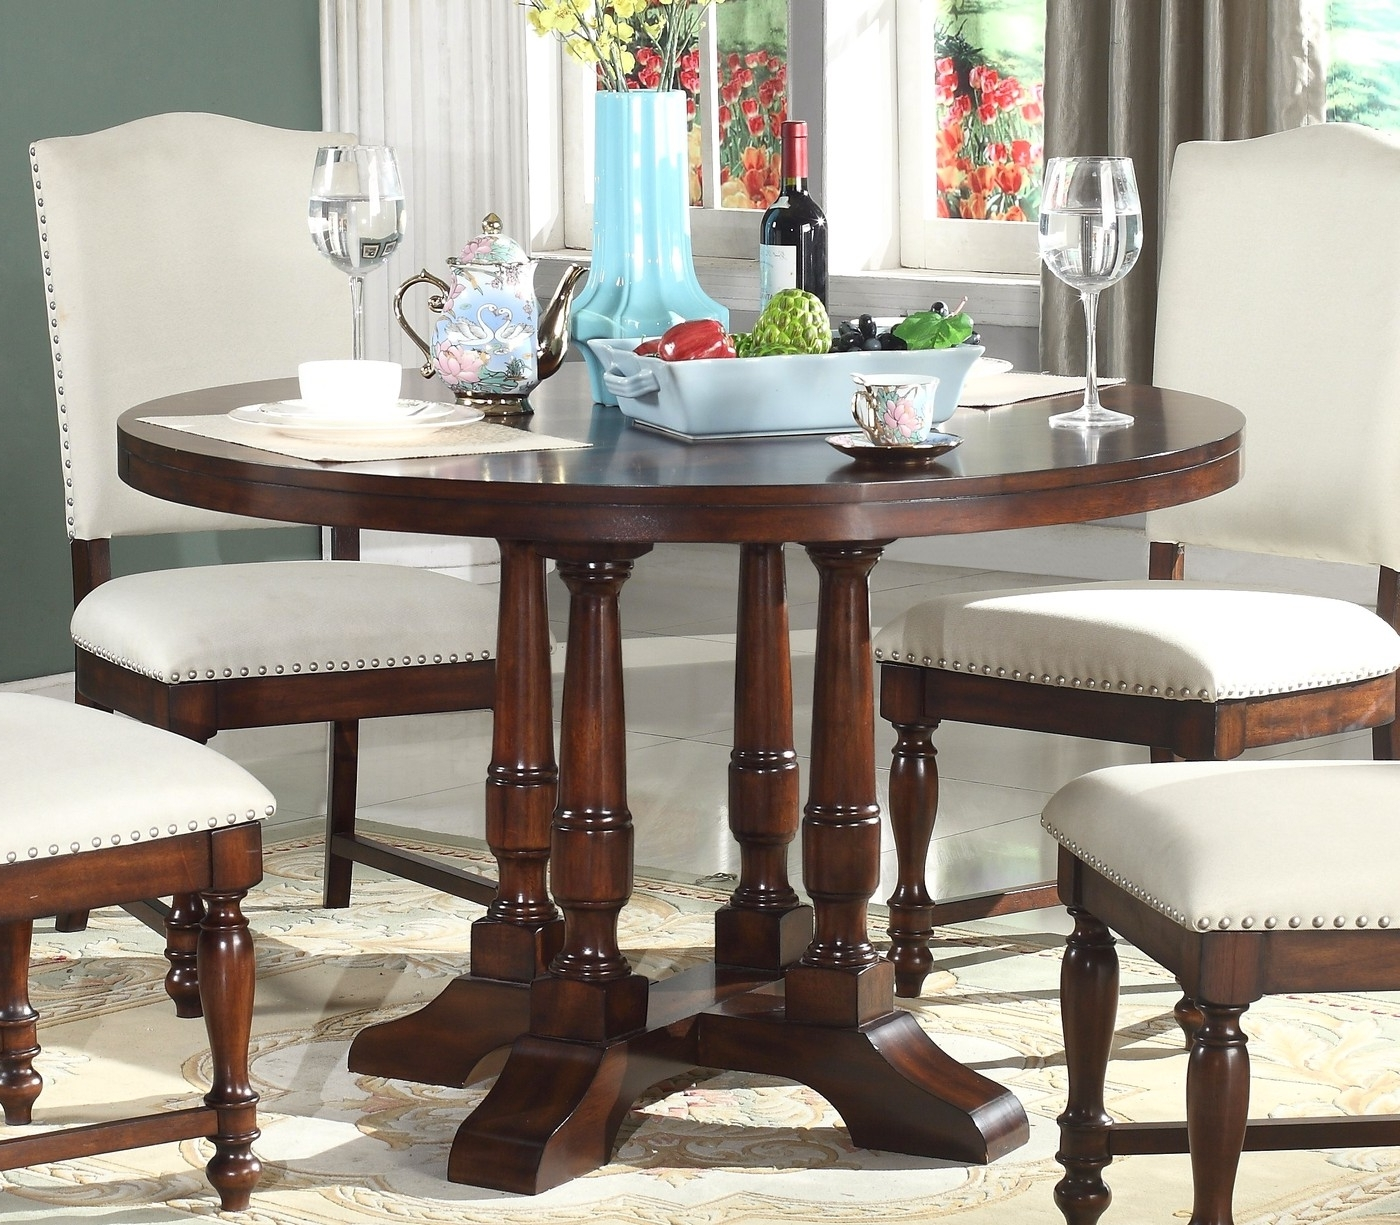 Jefferson Extension Round Dining Tables Throughout 2017 Dining Table Extension : Home Interior Design – Tips Build 48 Round (View 17 of 25)